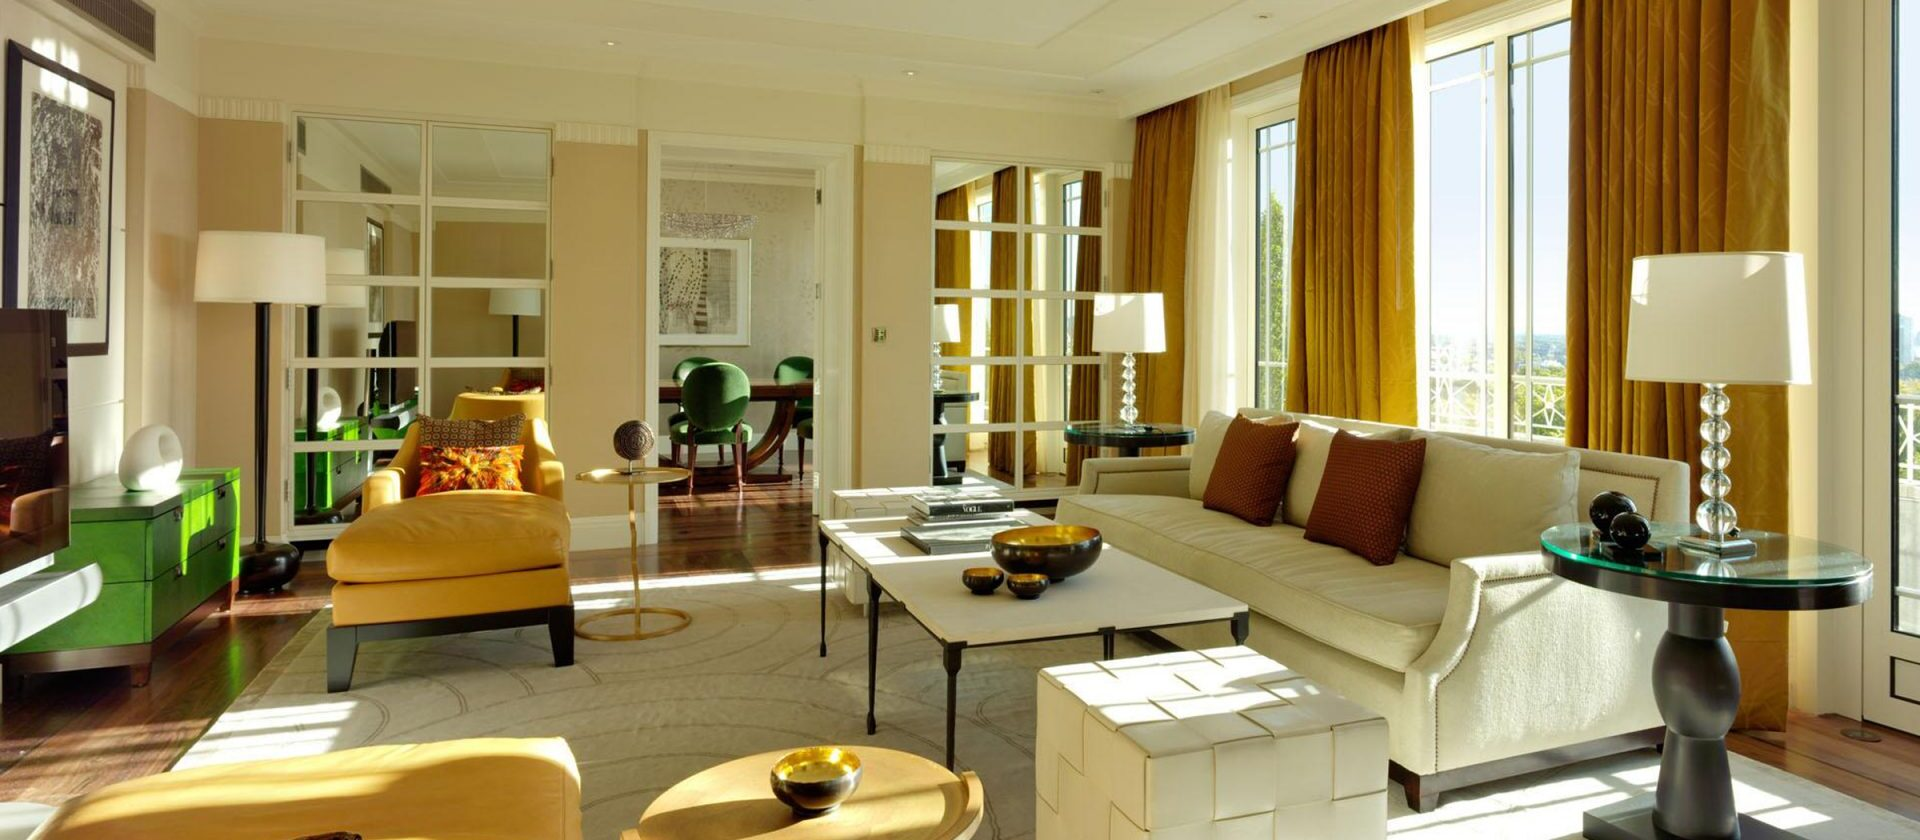 The harlequin penthouse the dorchester dorchester - London hotel suites with 2 bedrooms ...